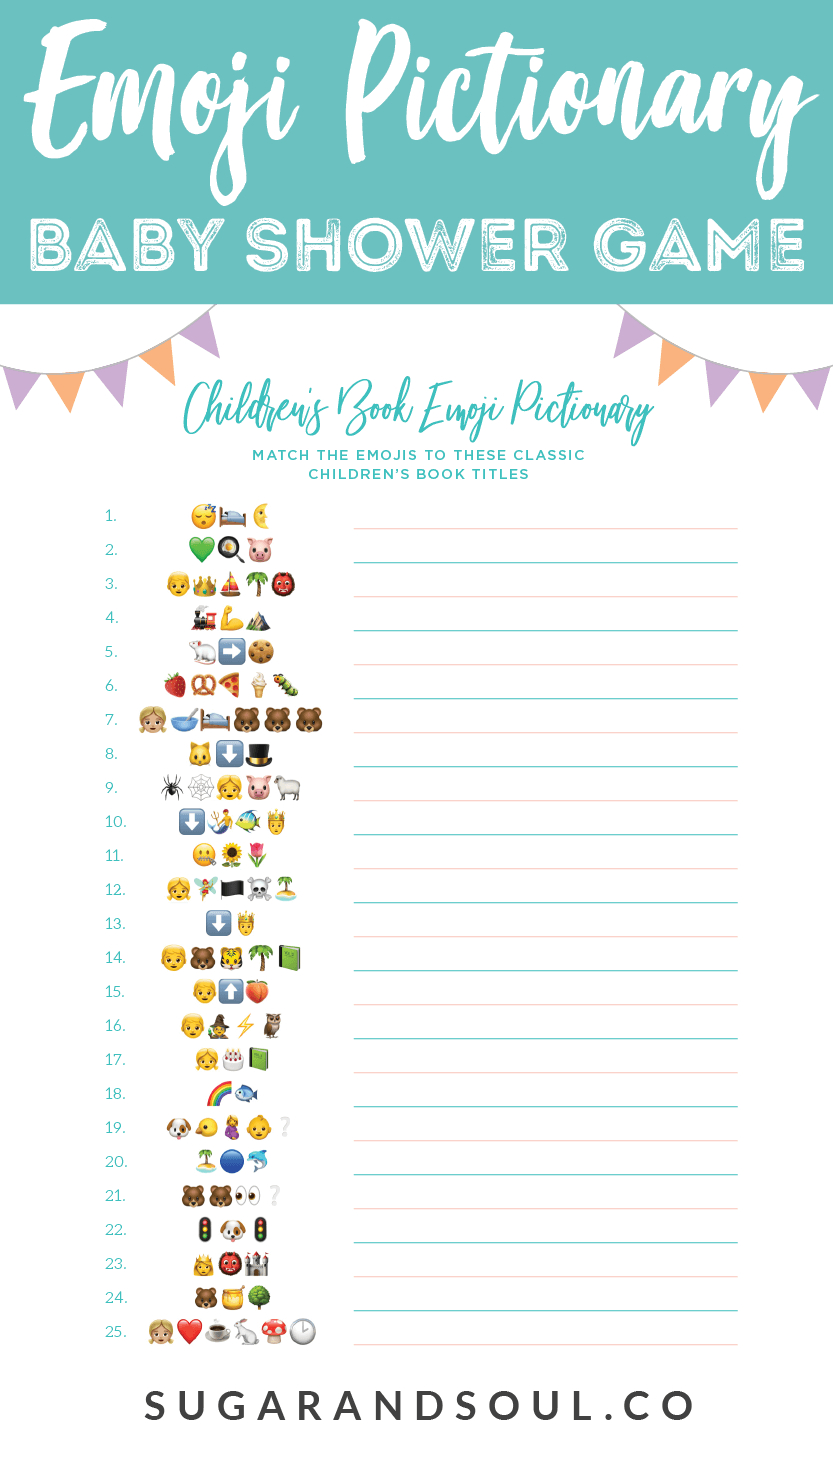 Emoji Pictionary Baby Shower Game Free Printable | Sugar & Soul - Free Printable Baby Shower Games With Answers